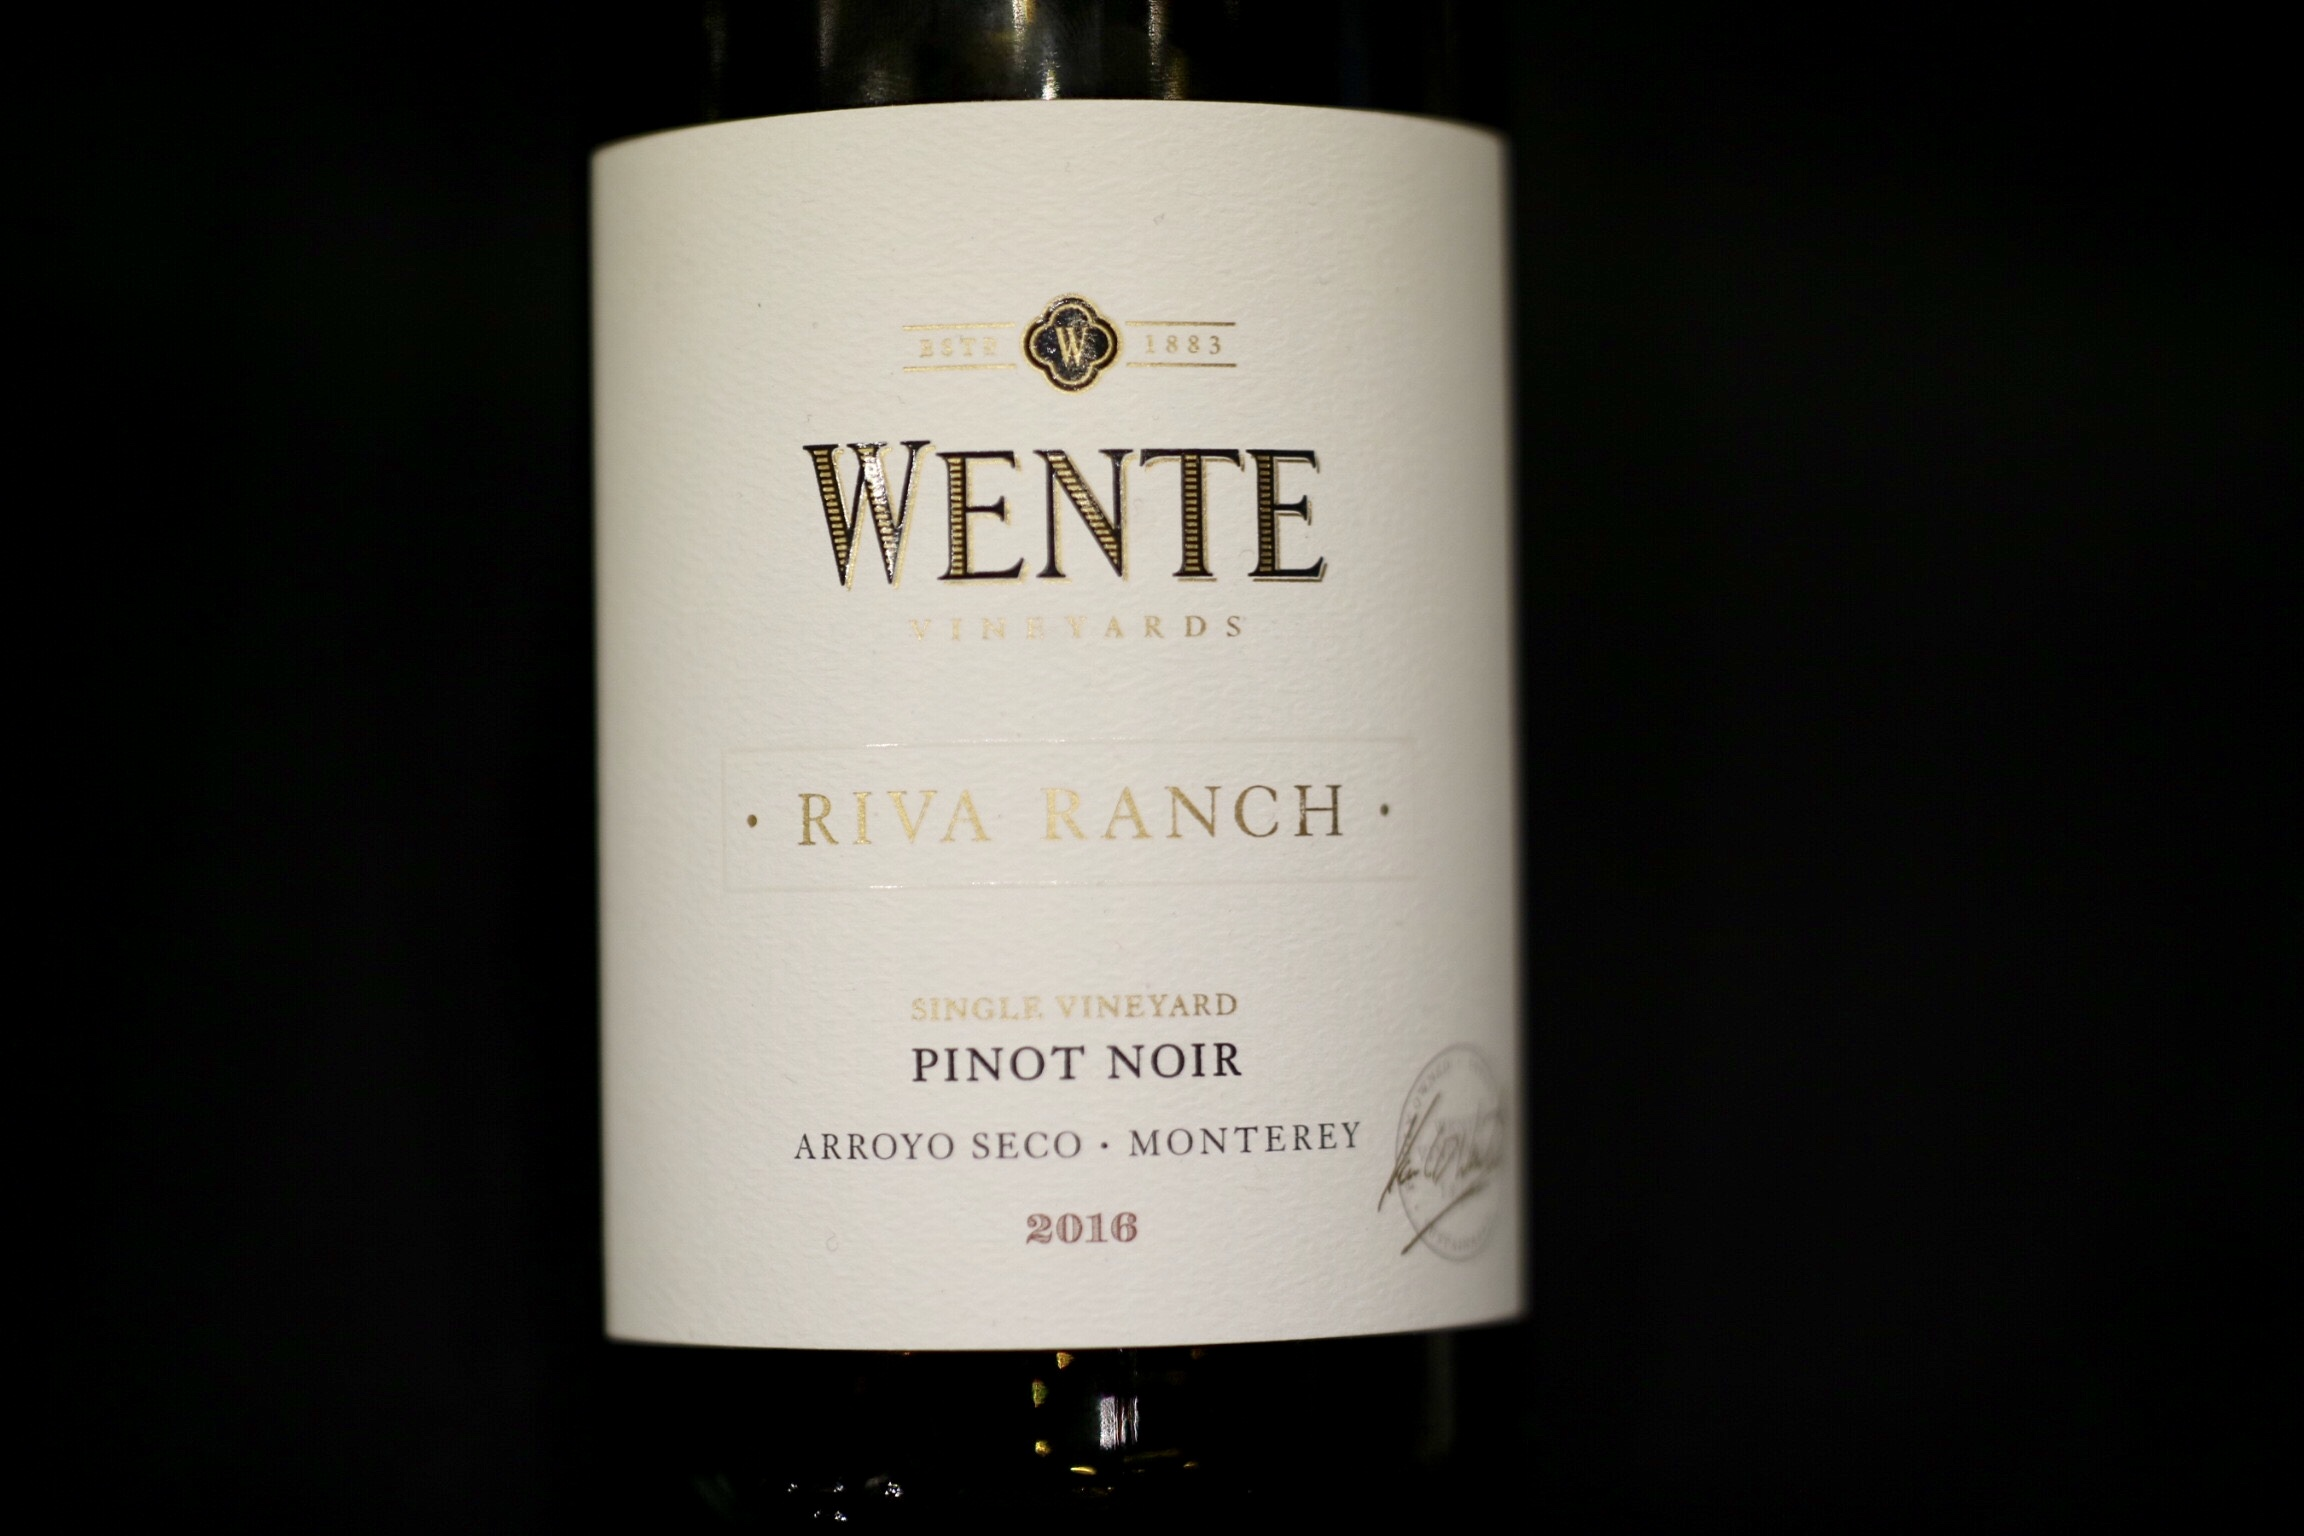 Riva Ranch Single Vineyard Pinot Noir 2016